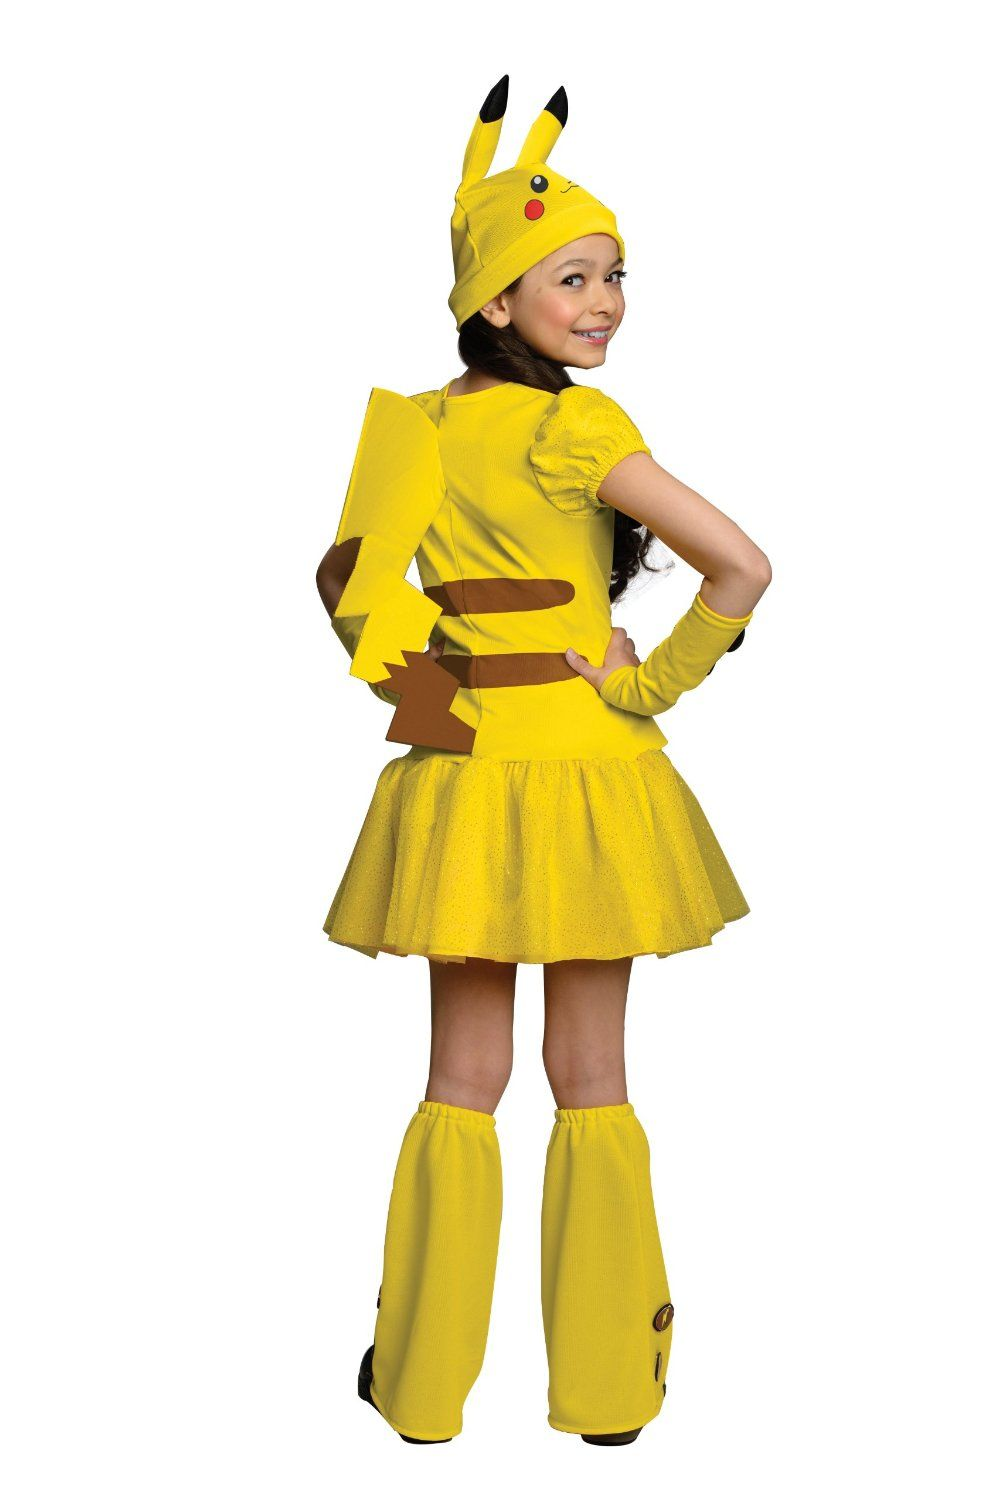 pikachu costume kids - Google Search  34e2d5aeaaf7